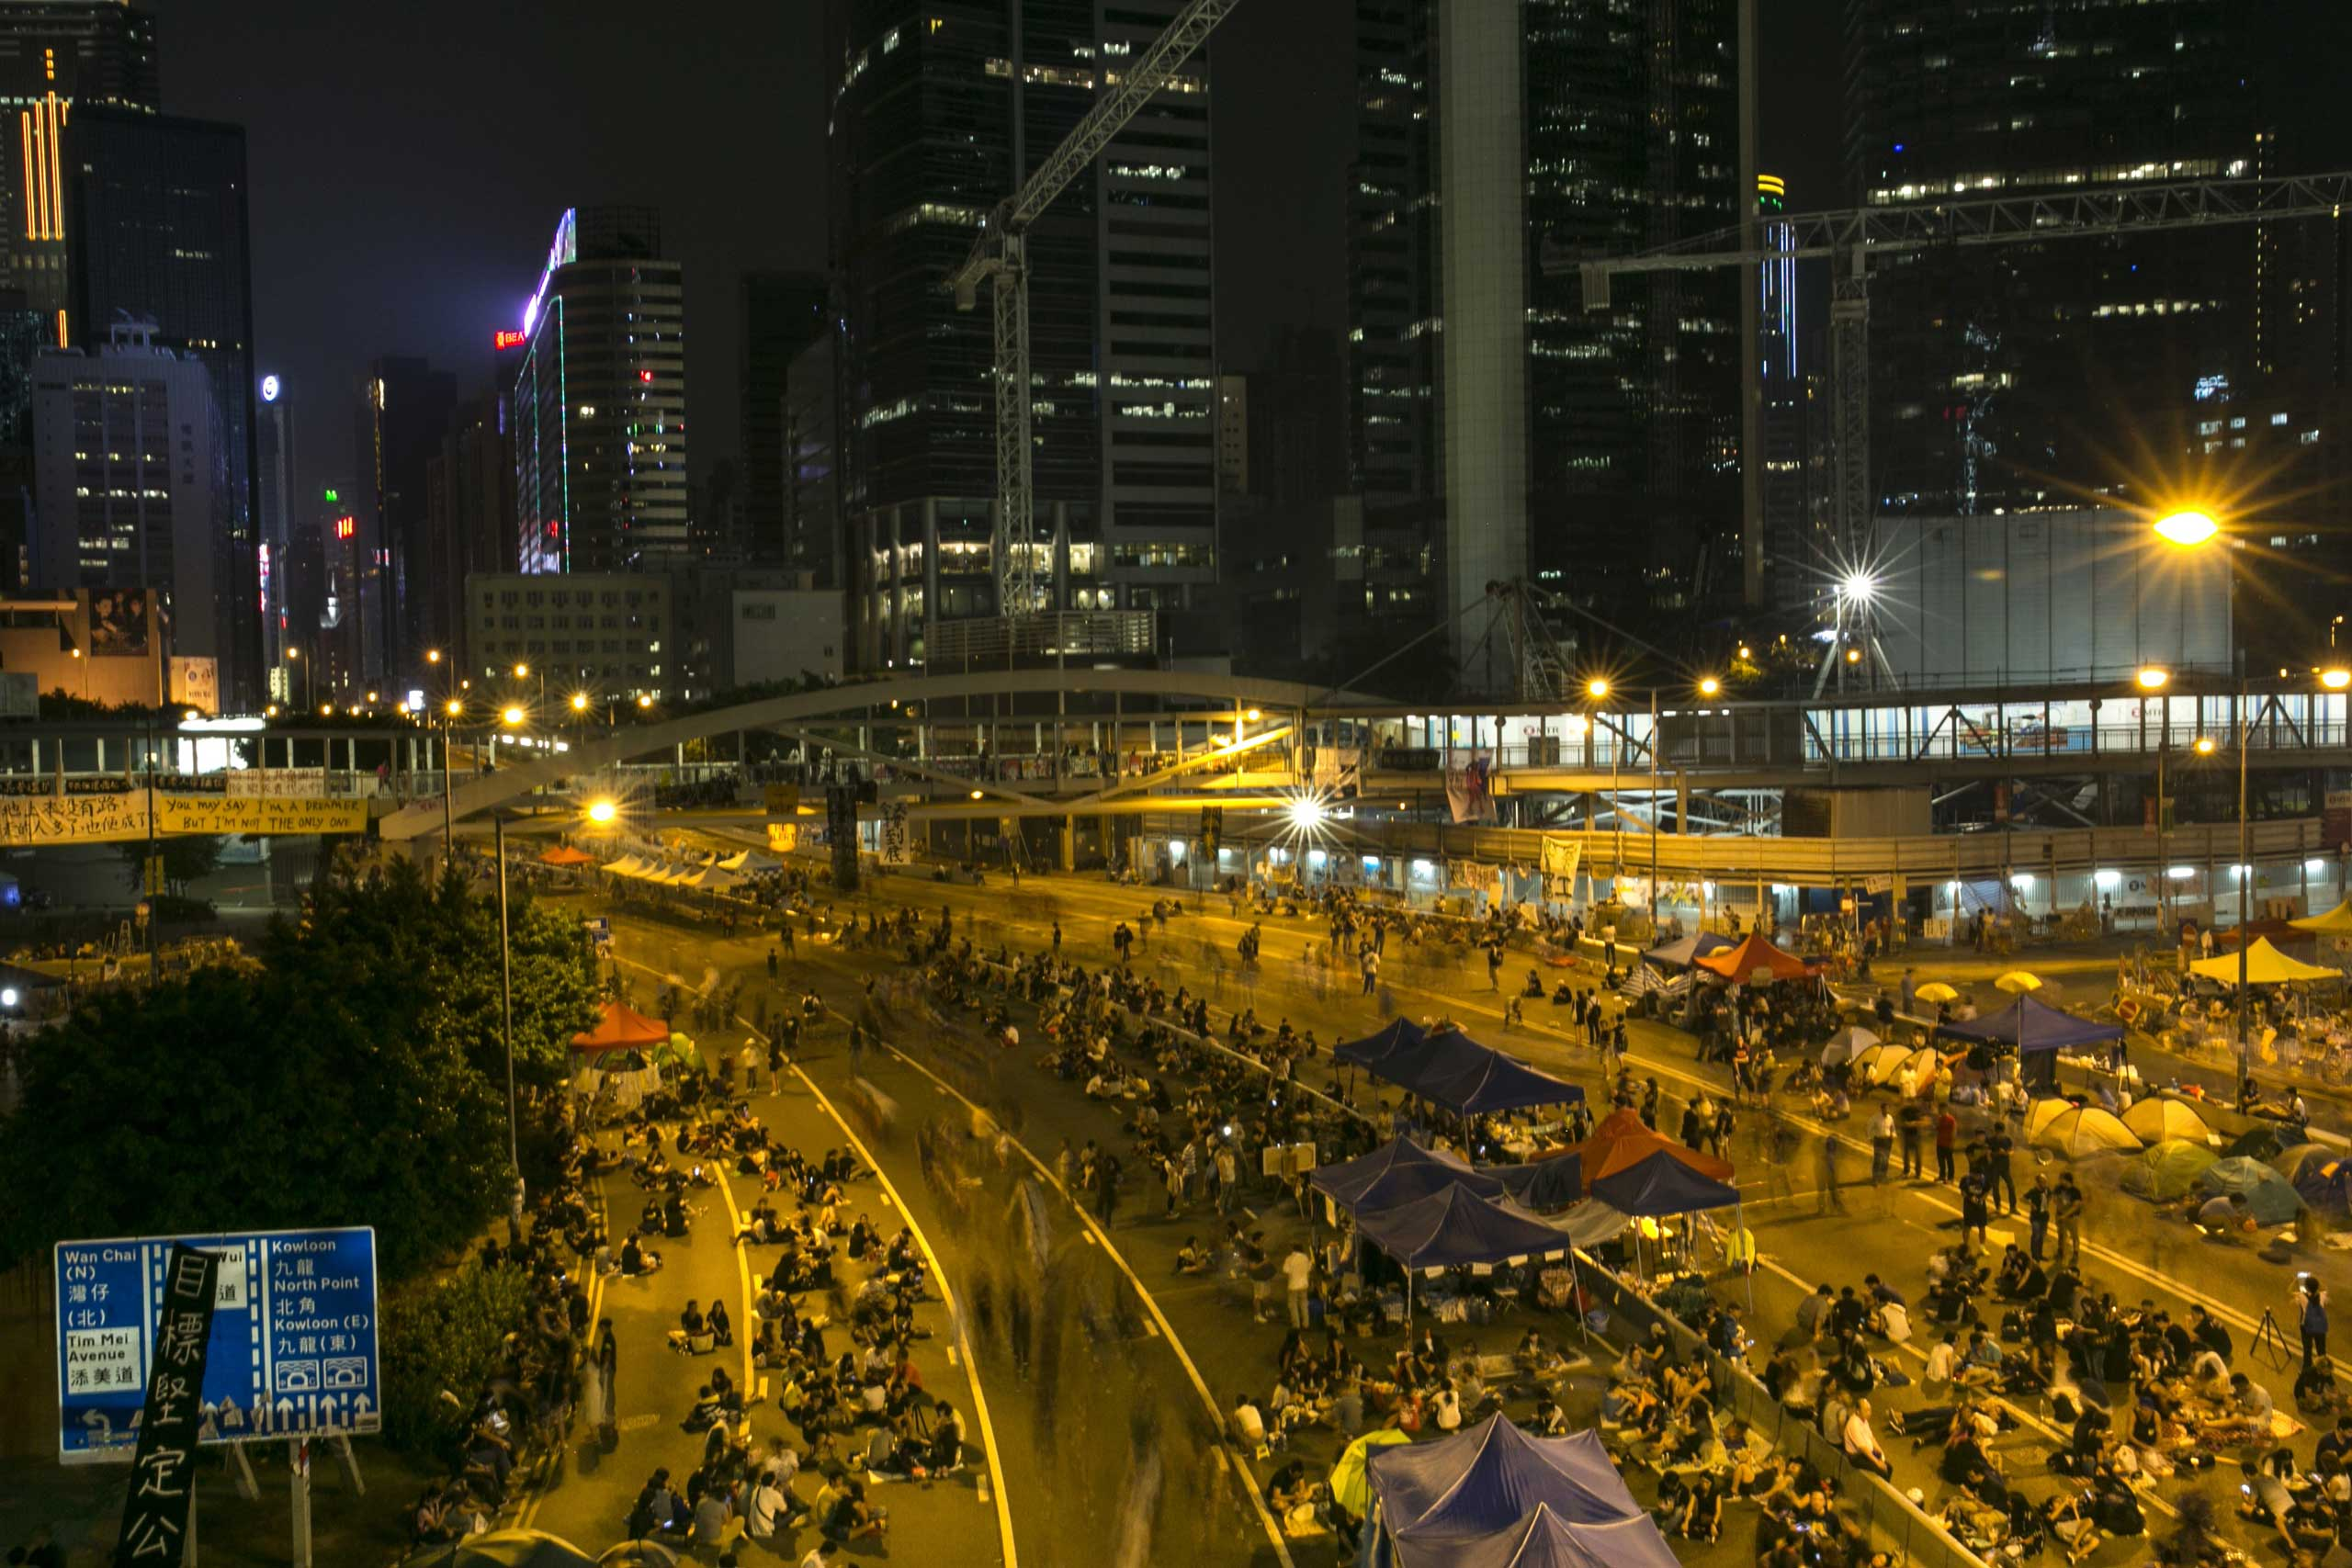 Protesters walk along the protest site on a quiet night as the standoff continues Oct. 5, 2014 in Hong Kong.